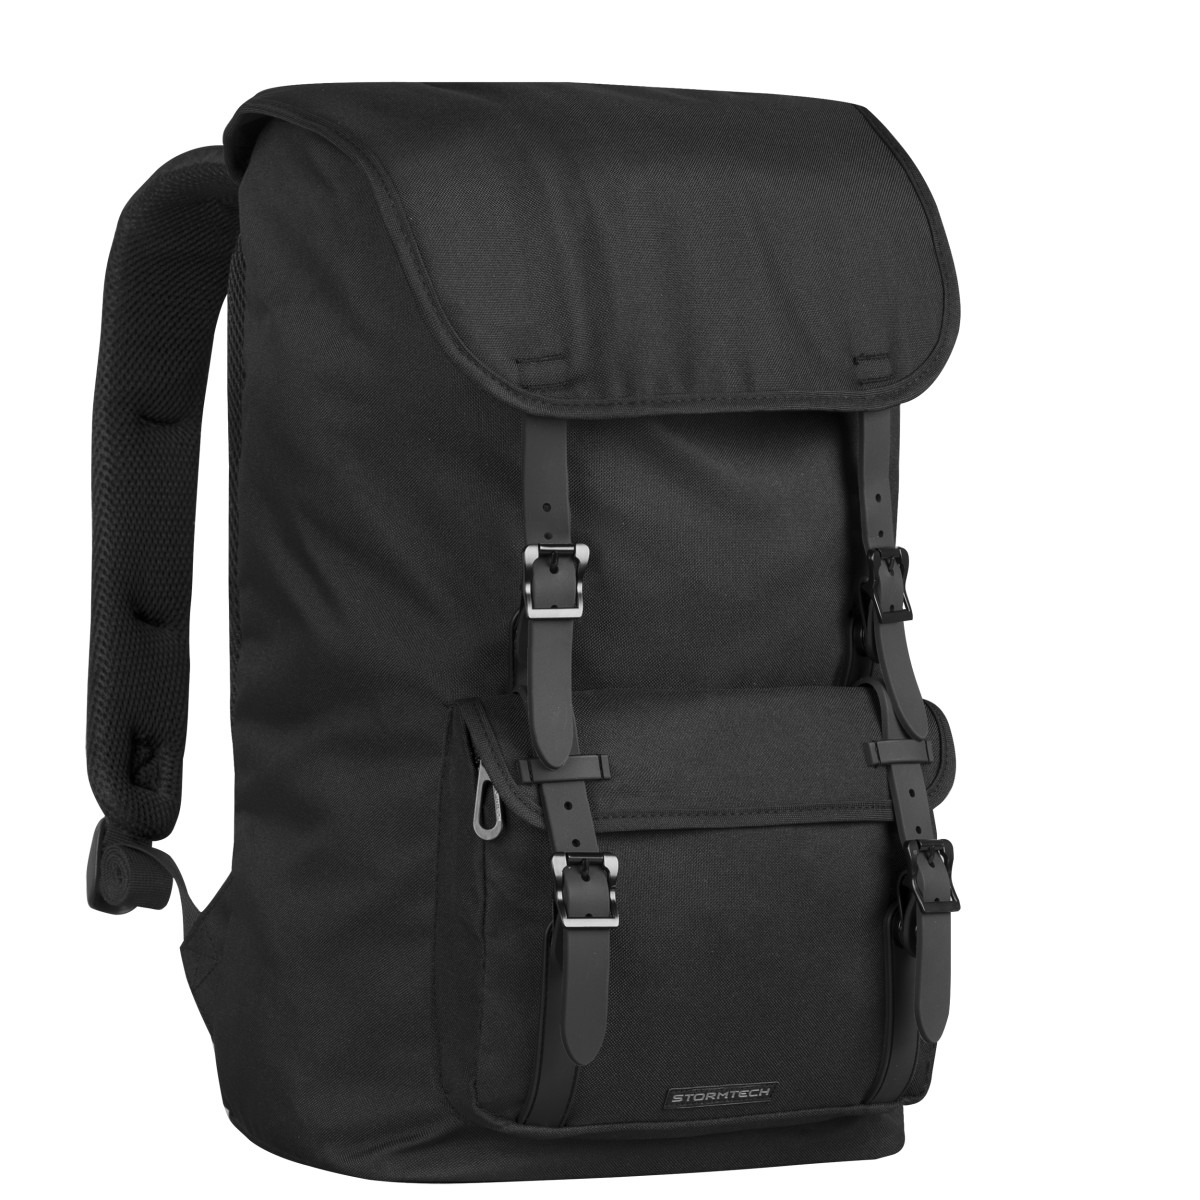 Stormtech Bags Oasis Backpack